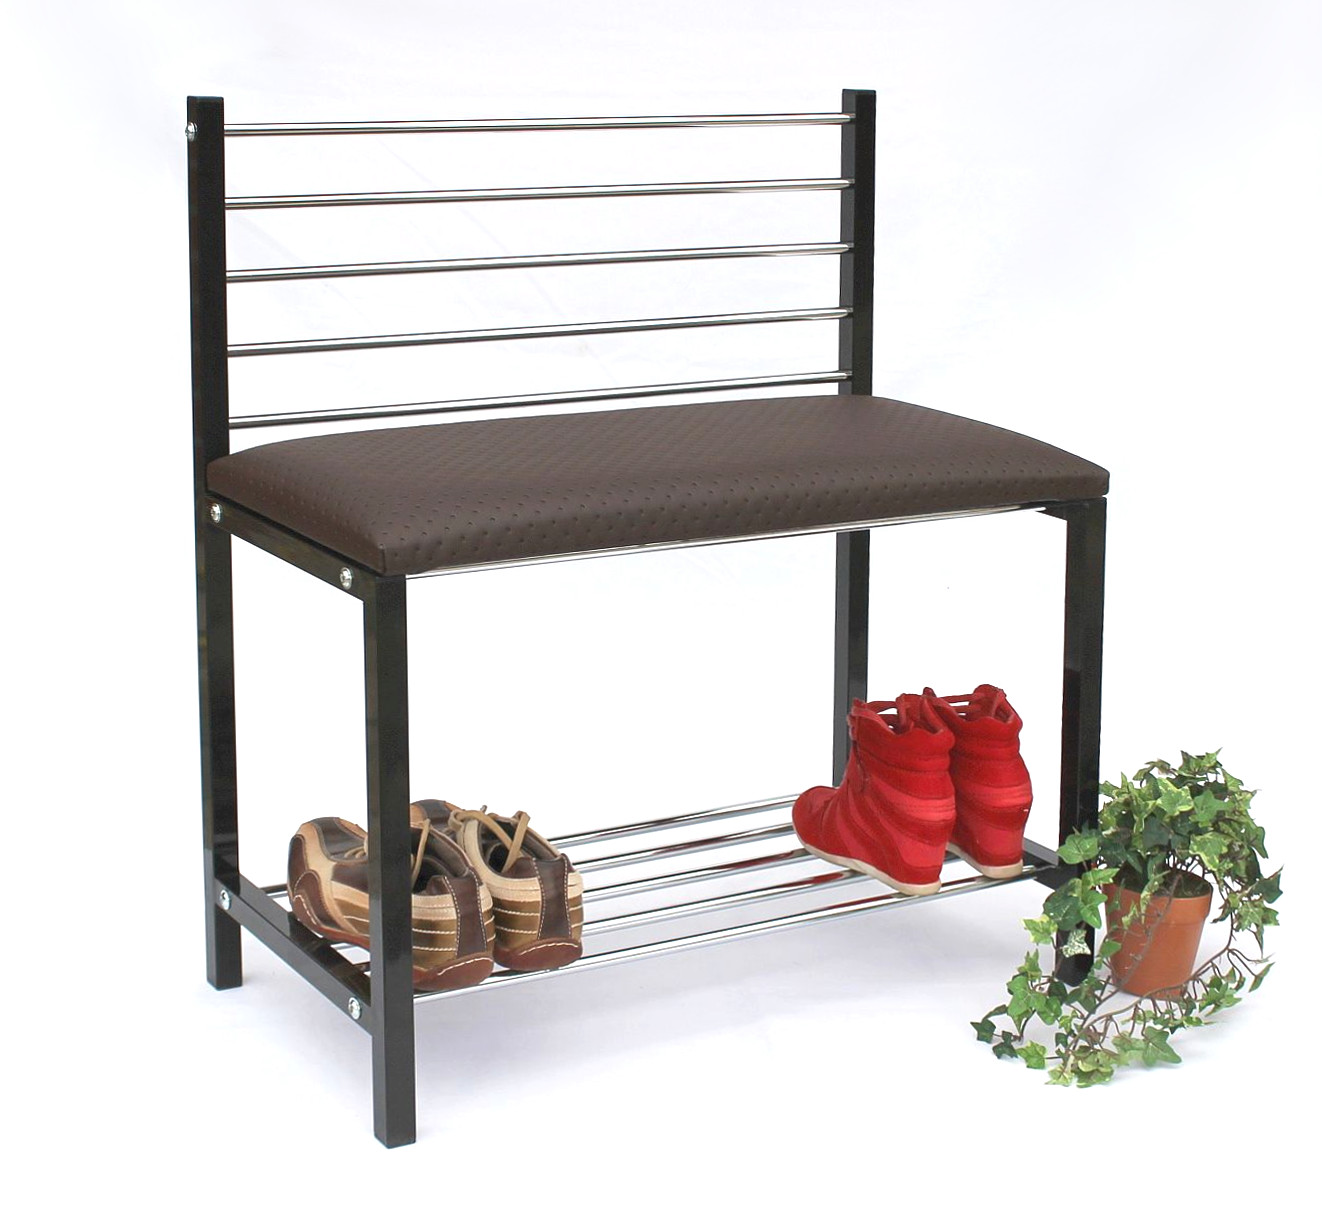 schuhregal mit sitzbank bank 70 cm schuhschrank aus metall schuhablage ebay. Black Bedroom Furniture Sets. Home Design Ideas